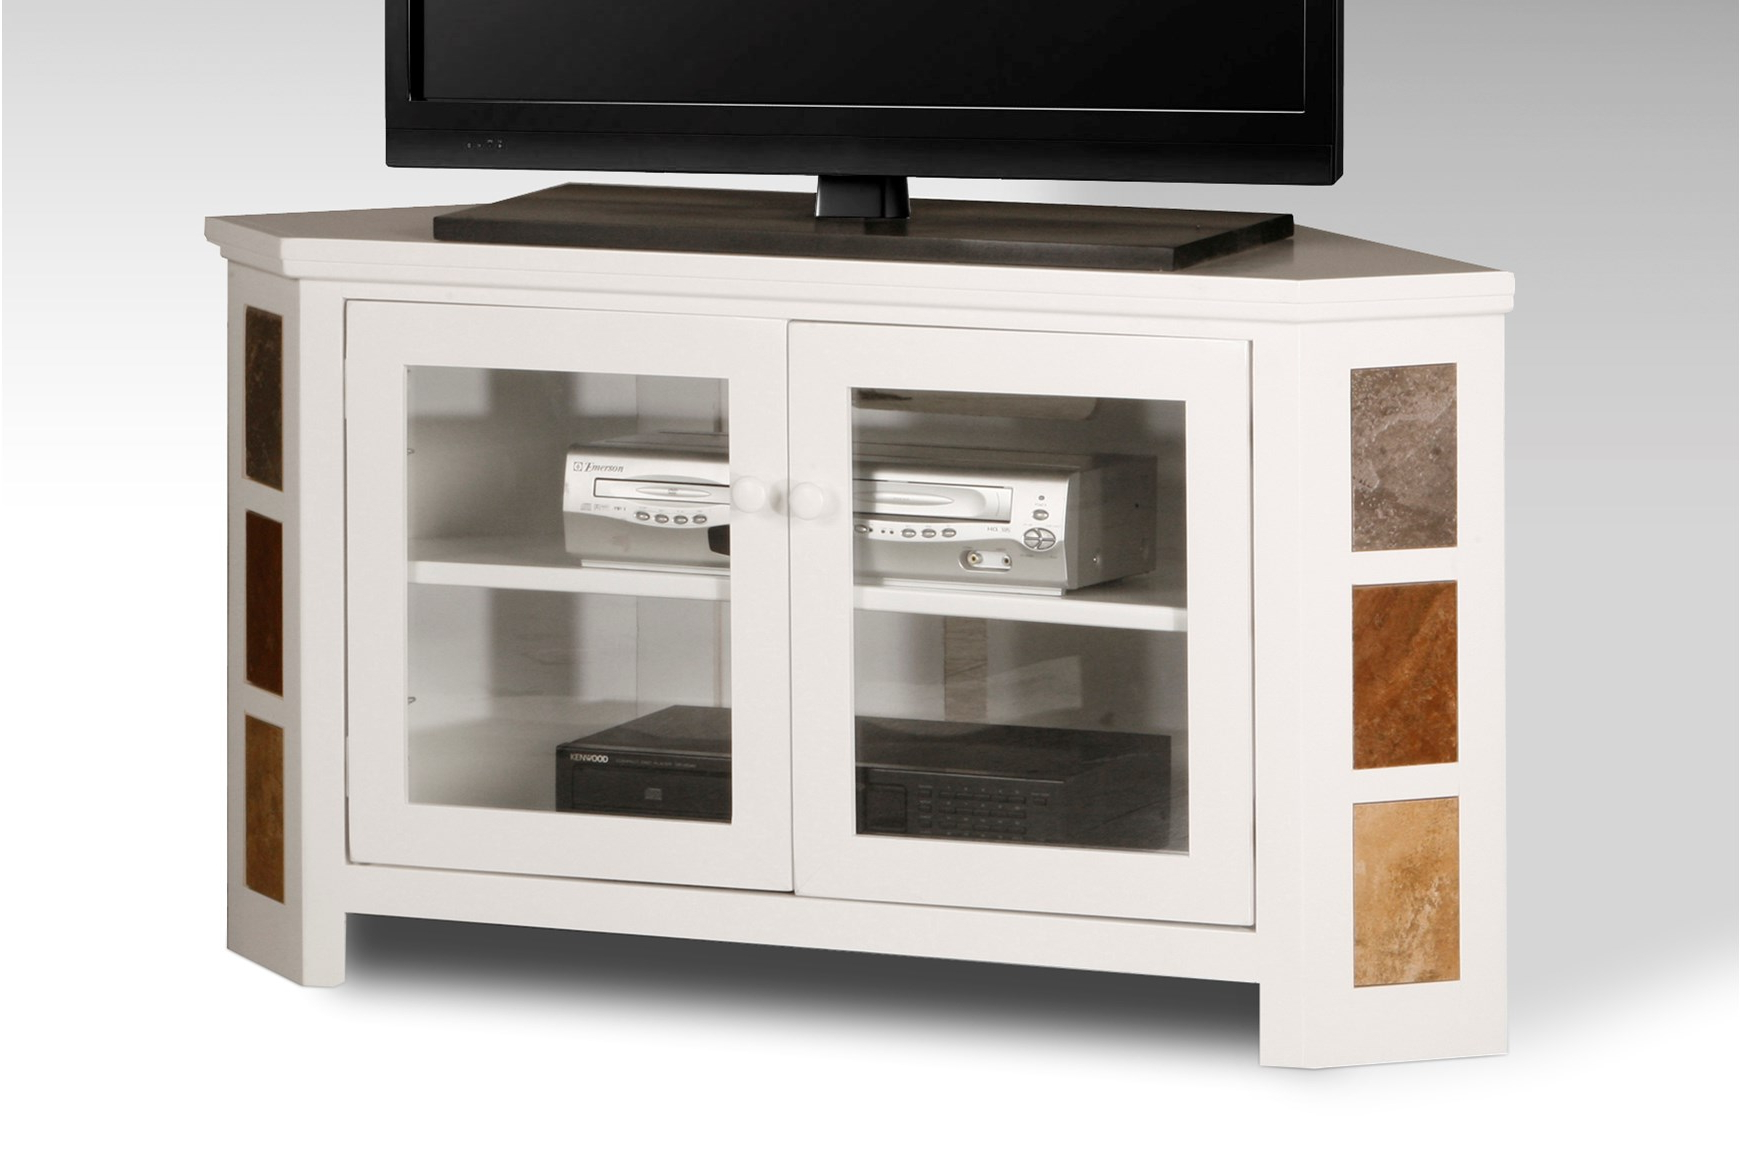 Corner Rustic Tv Stand Plans White With Barn Doors Small Canada Pertaining To Newest White Corner Tv Cabinets (View 2 of 20)